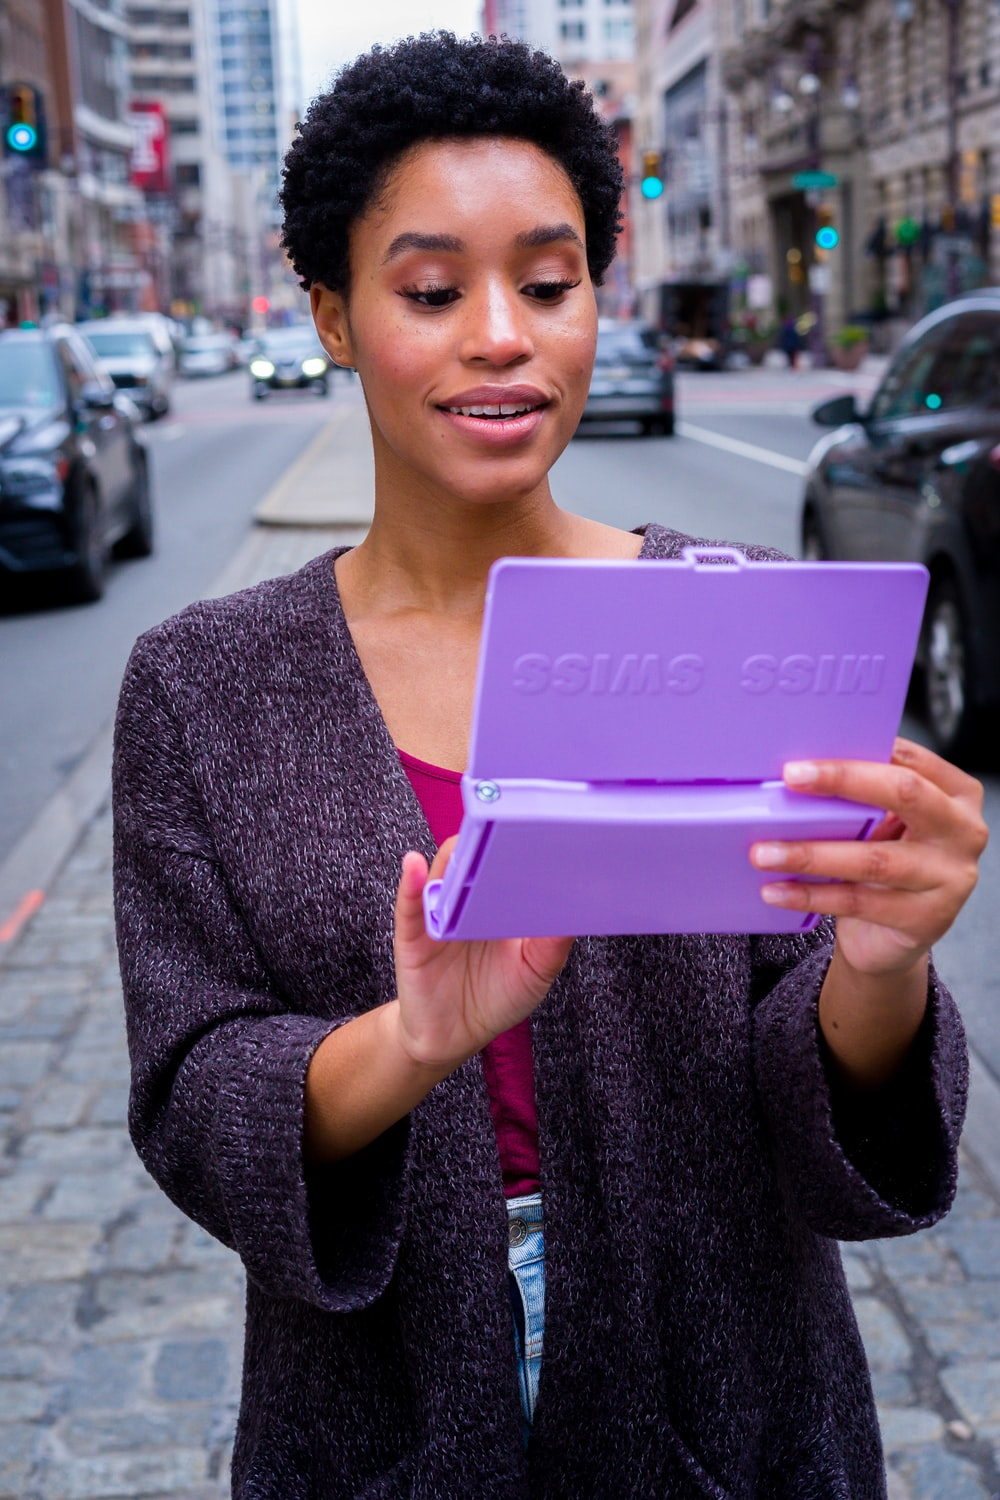 woman in gray cardigan holding pink tablet computer